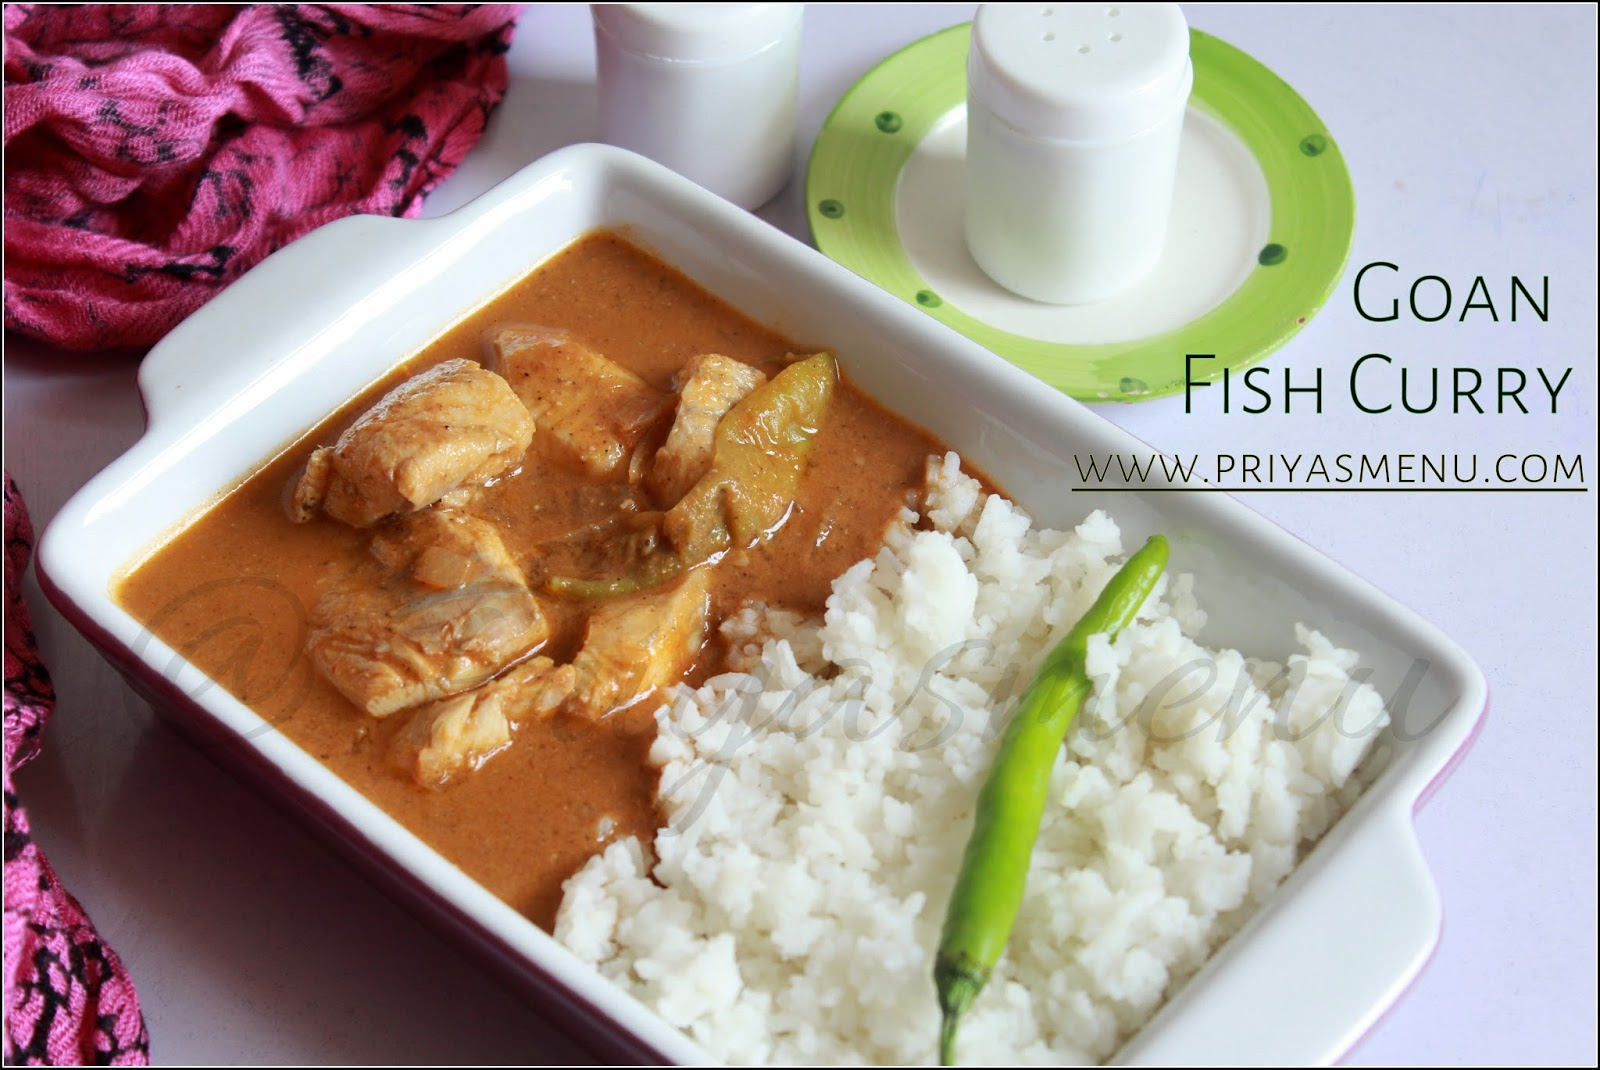 Priyas menu yum yum yummy food for food lovers goan fish curry you all must be wondering how come a regular post in the middle of chutney series on my blog when this recipe goes to my favourite event shhh secretly forumfinder Choice Image